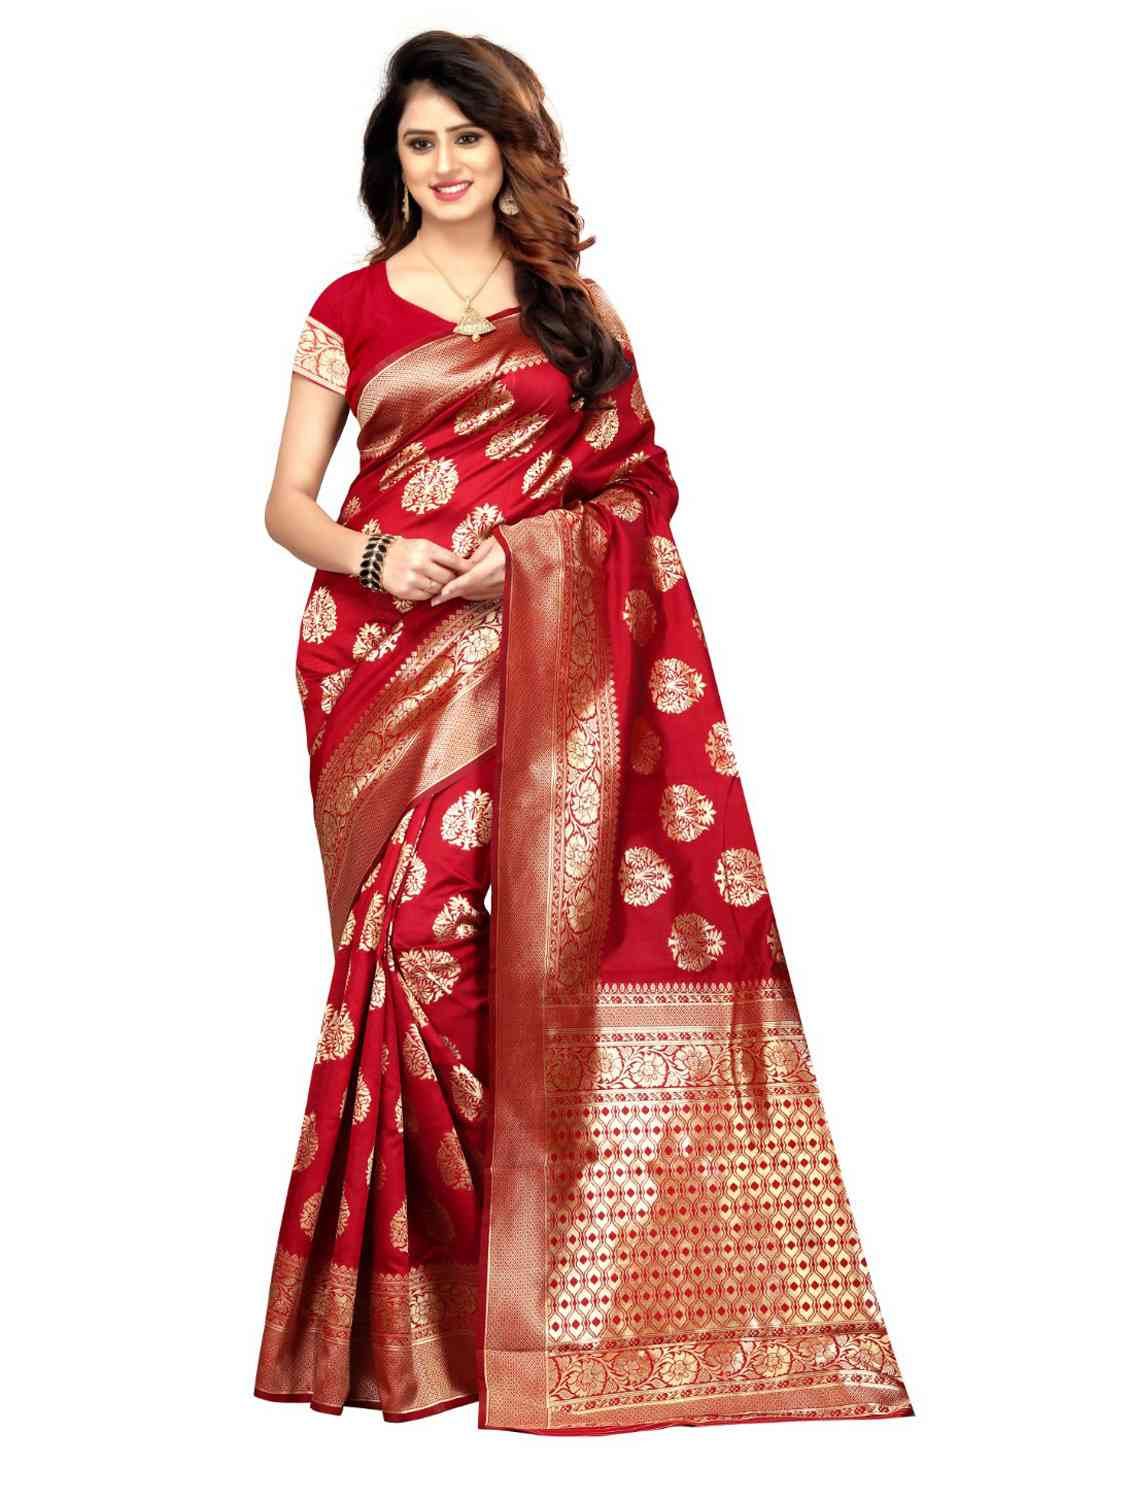 Red Colored Jacquard Silk Saree pari SD1503  30""